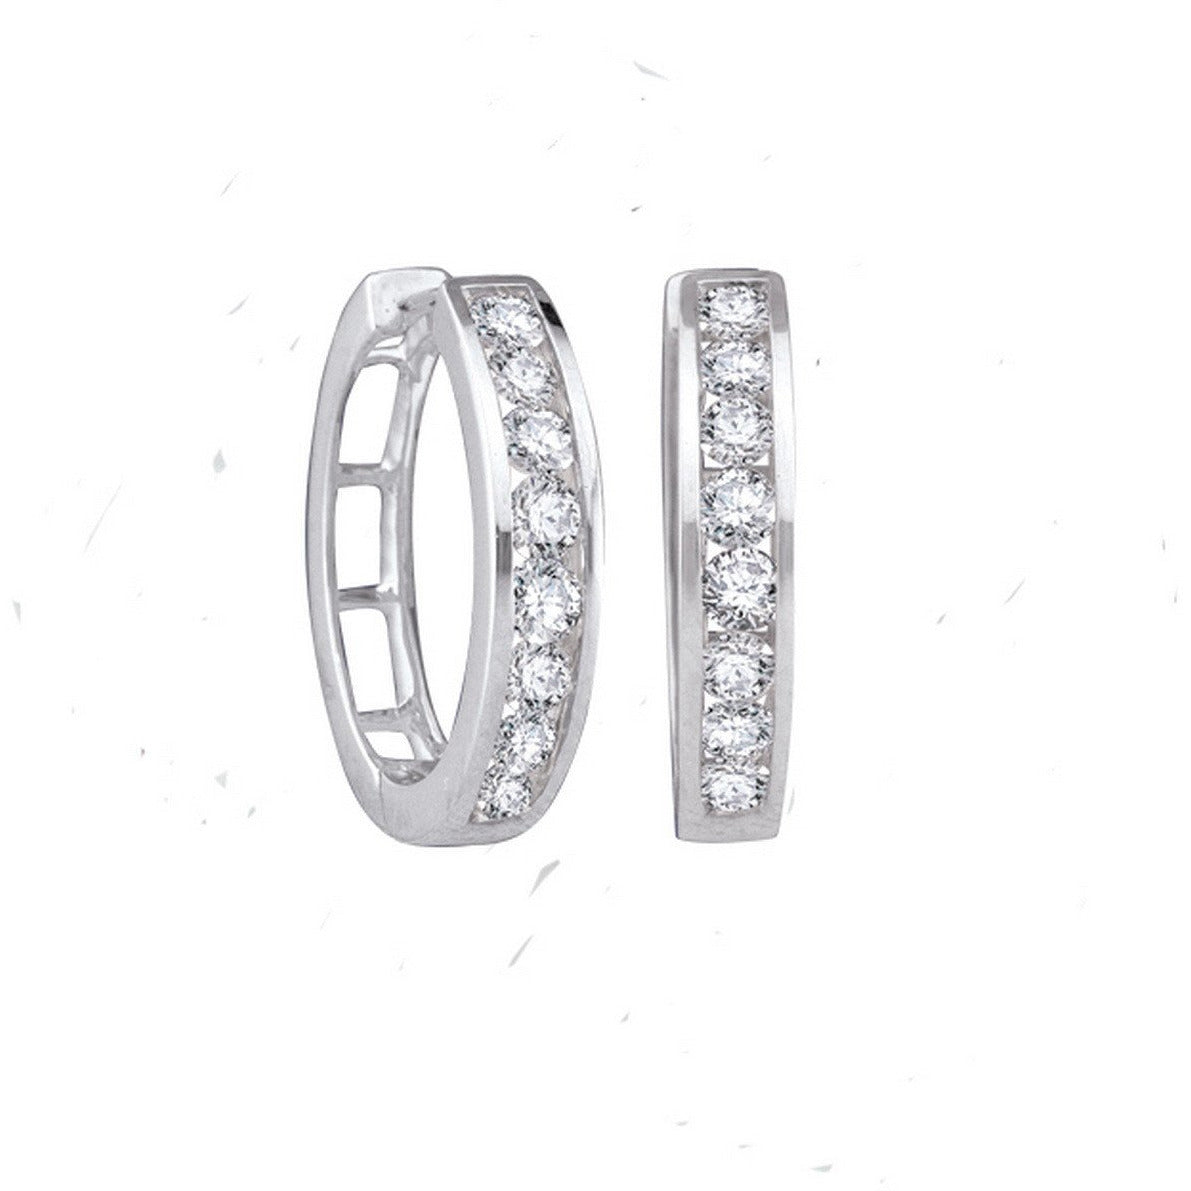 10kt White Gold Womens Round Diamond Hoop Earrings 1.00 Cttw 91568 - shirin-diamonds